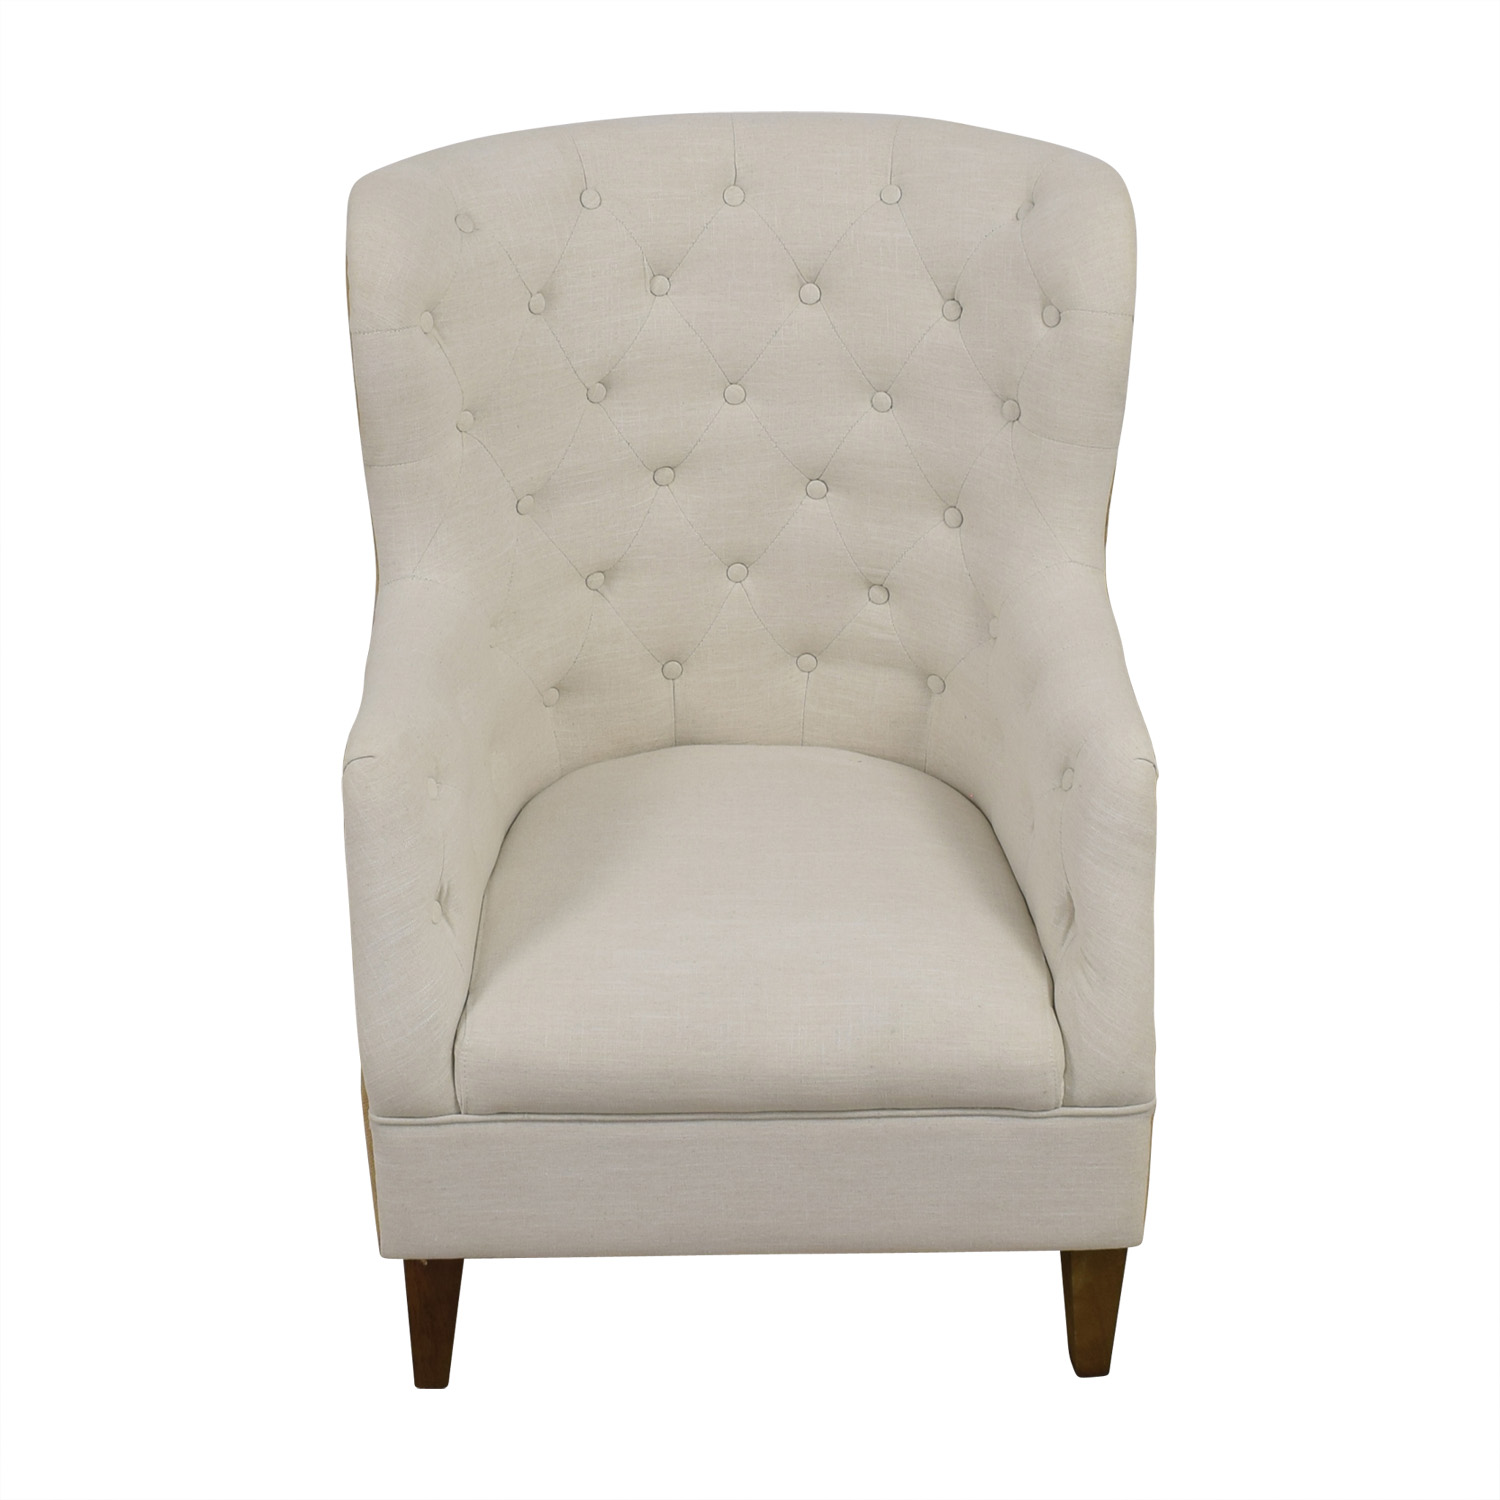 white tufted chair rocking and ottoman covers 76 off classic concepts tan back wing accent discount